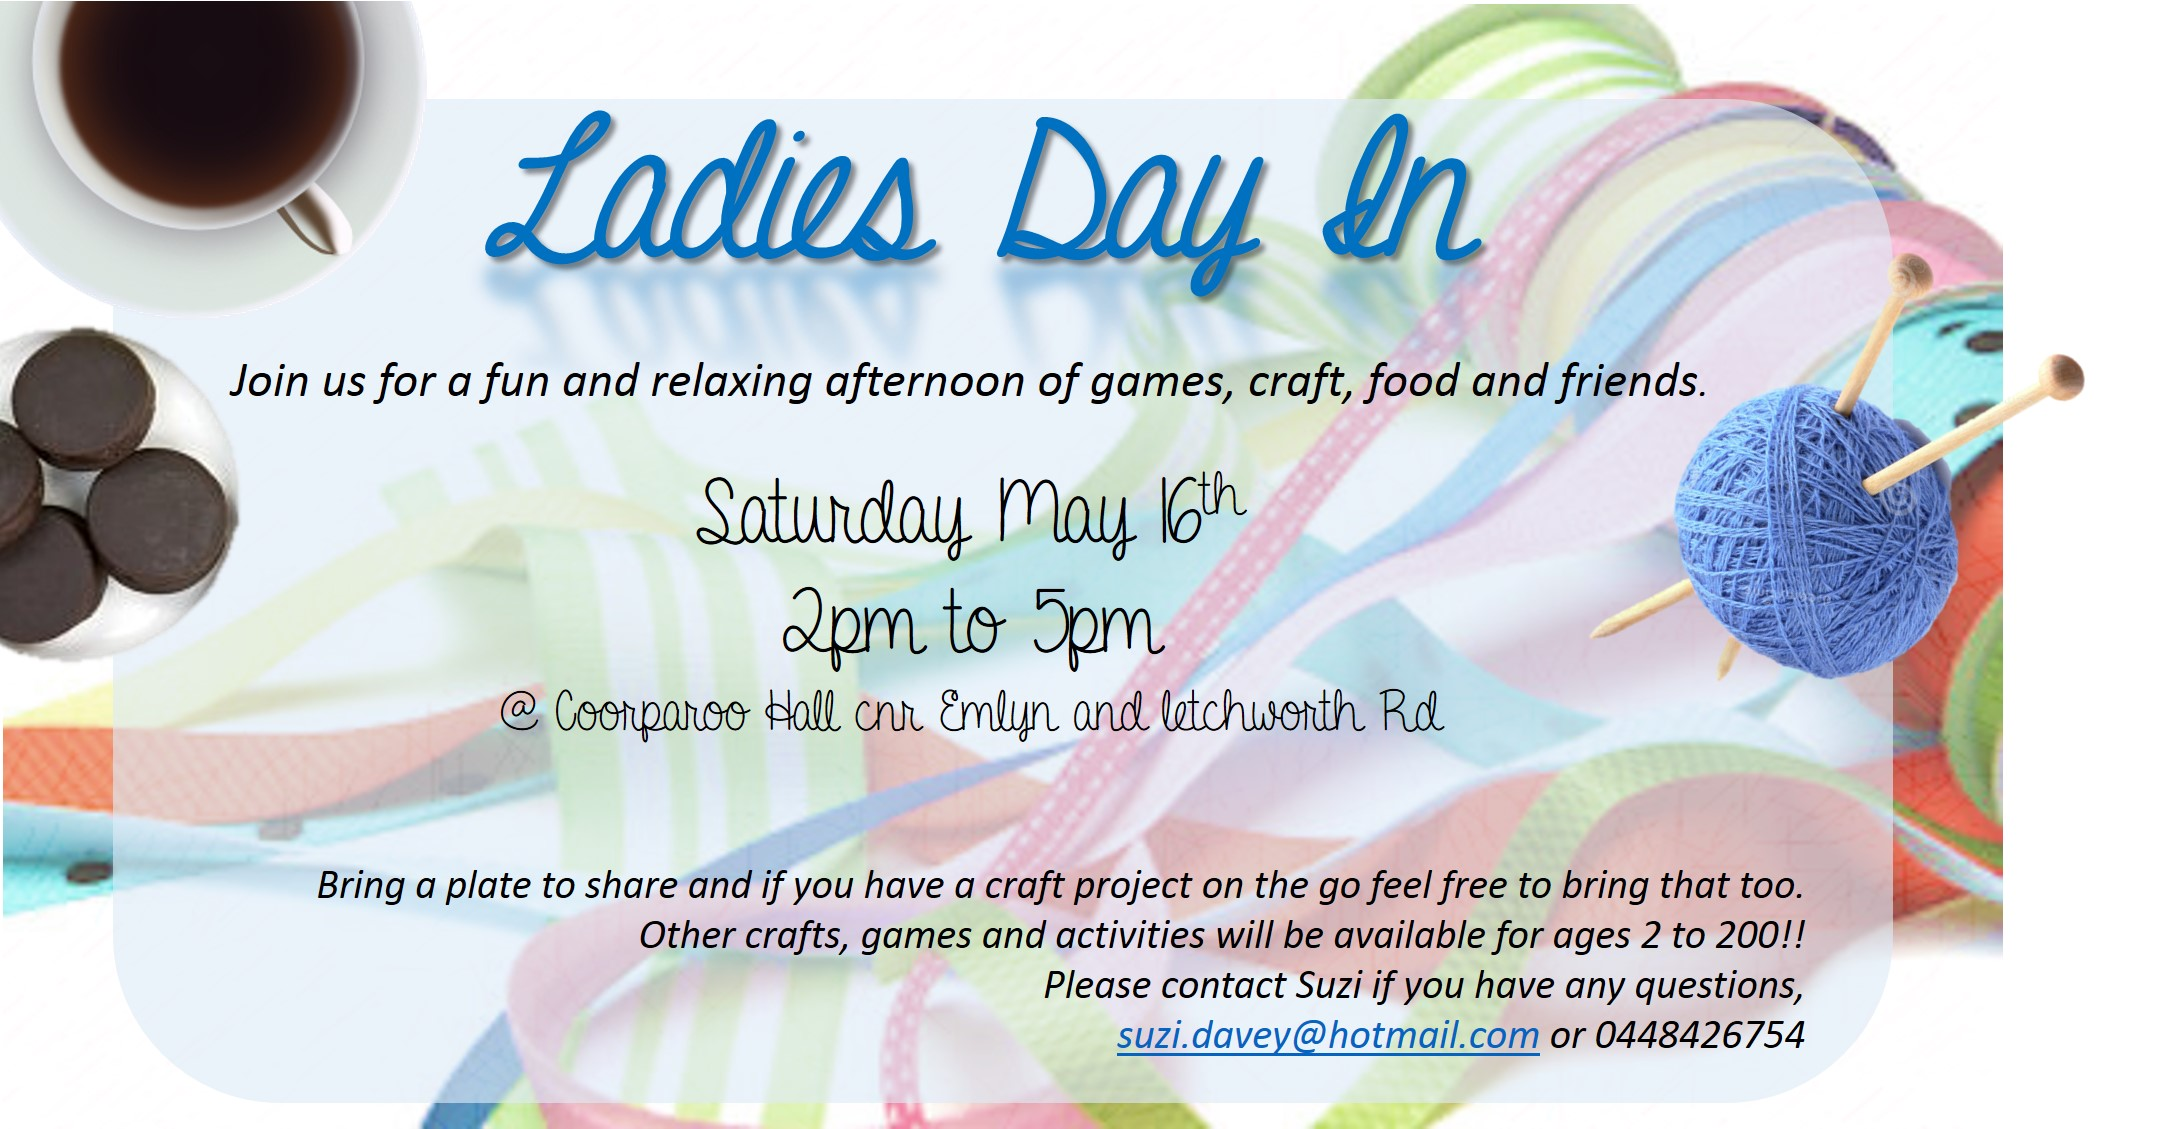 Ladies Day In